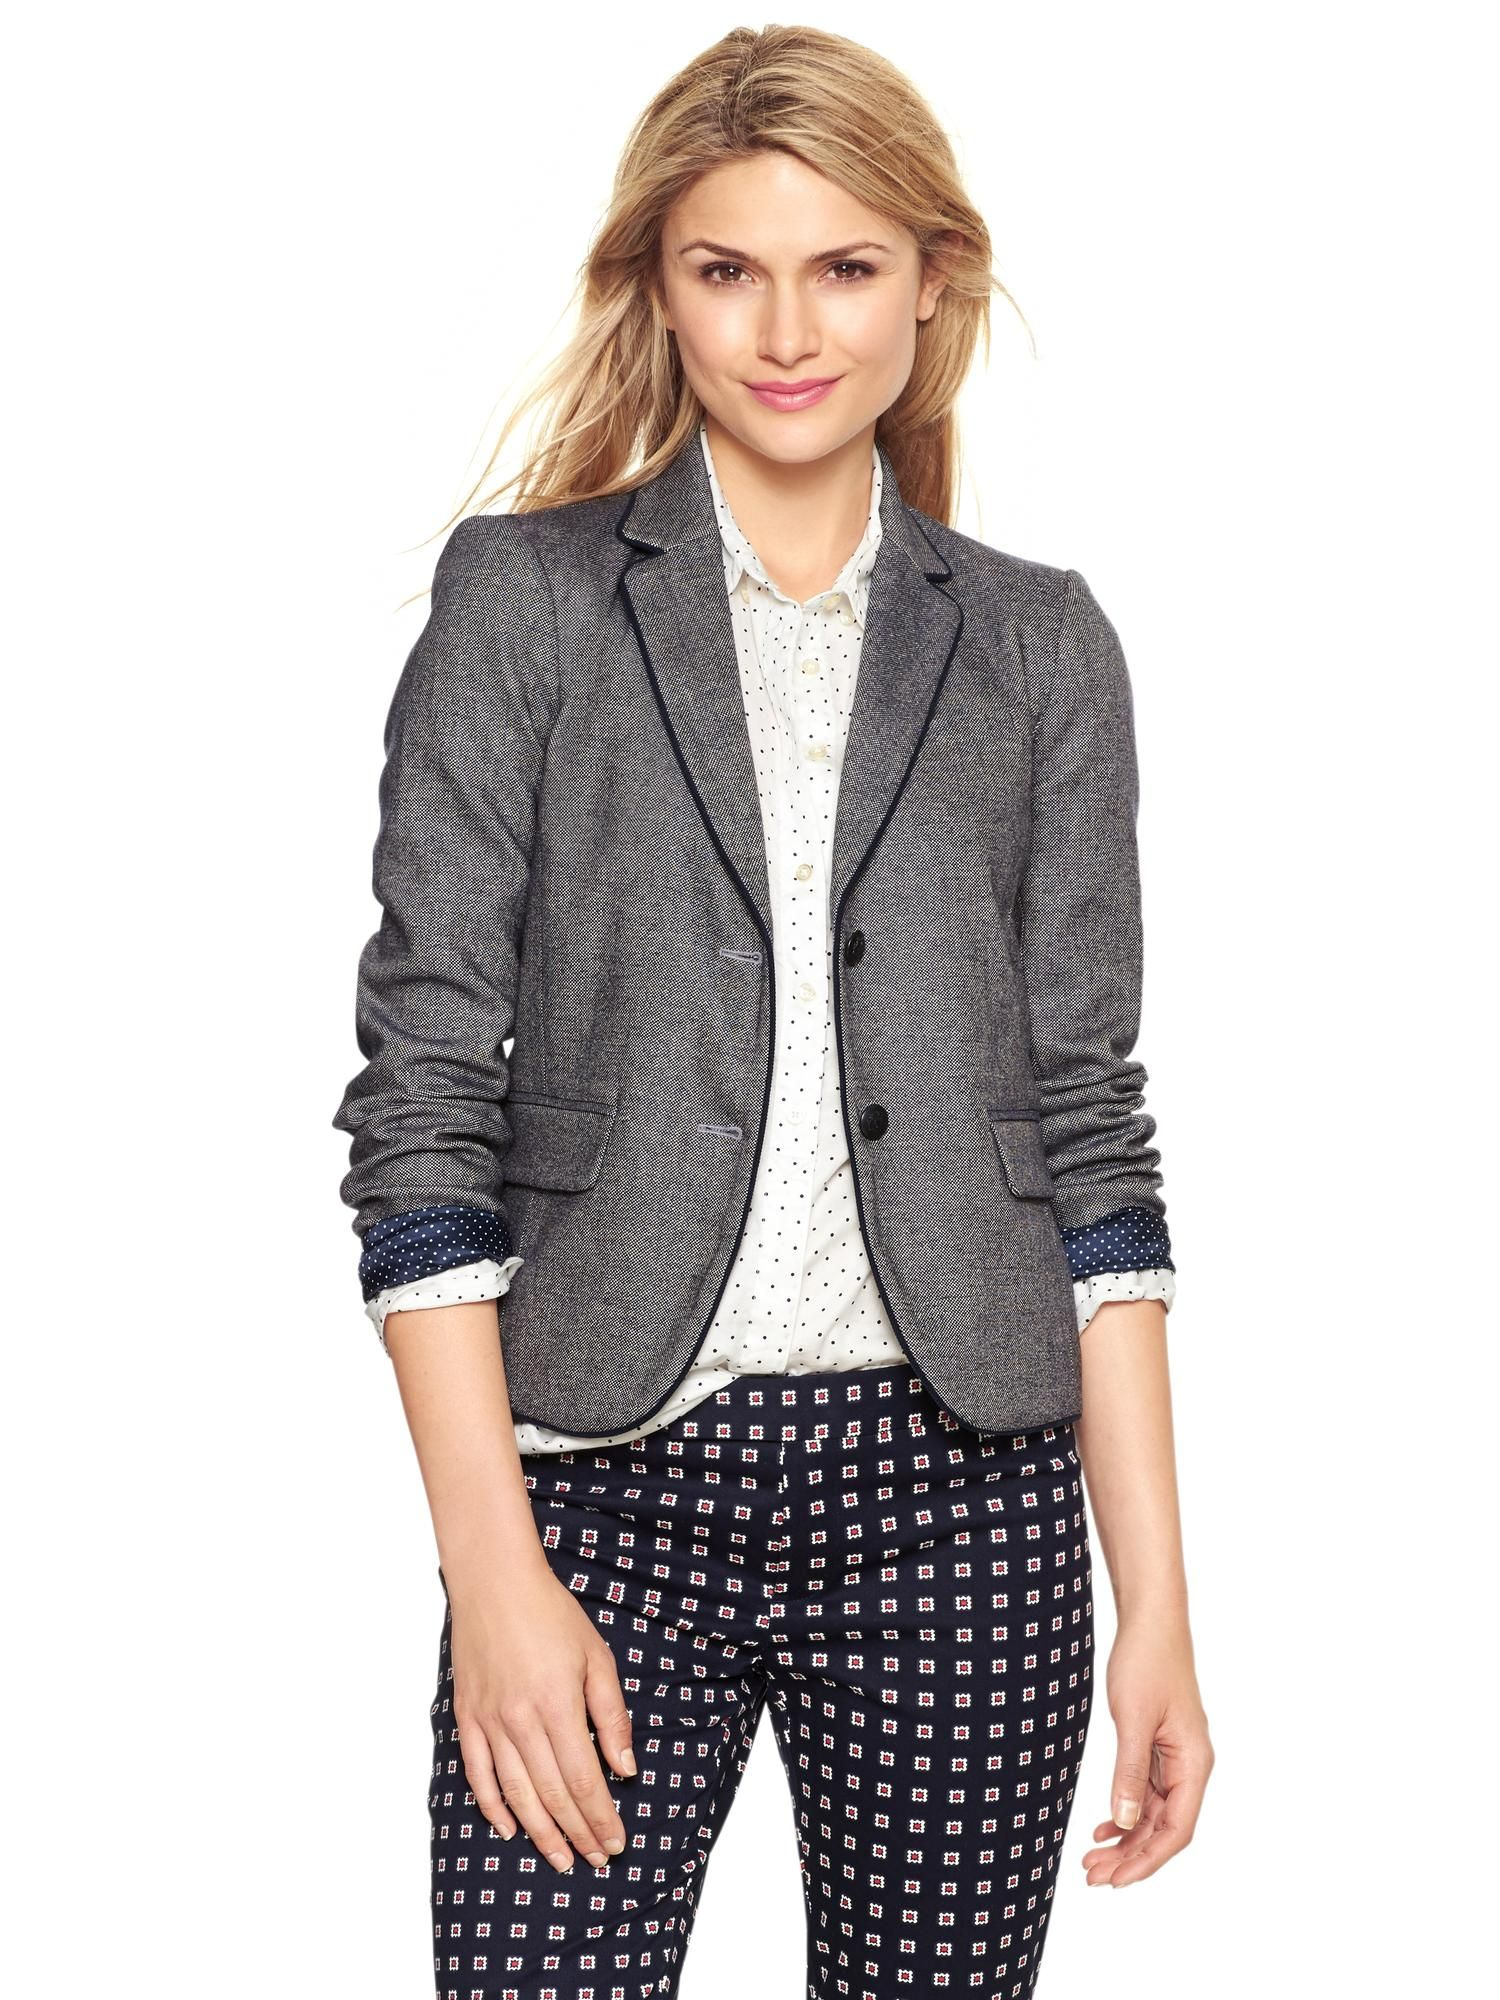 48f352bba8d0c Tweed academy blazer - navy | Gap | Banana Republic | Fashion ...